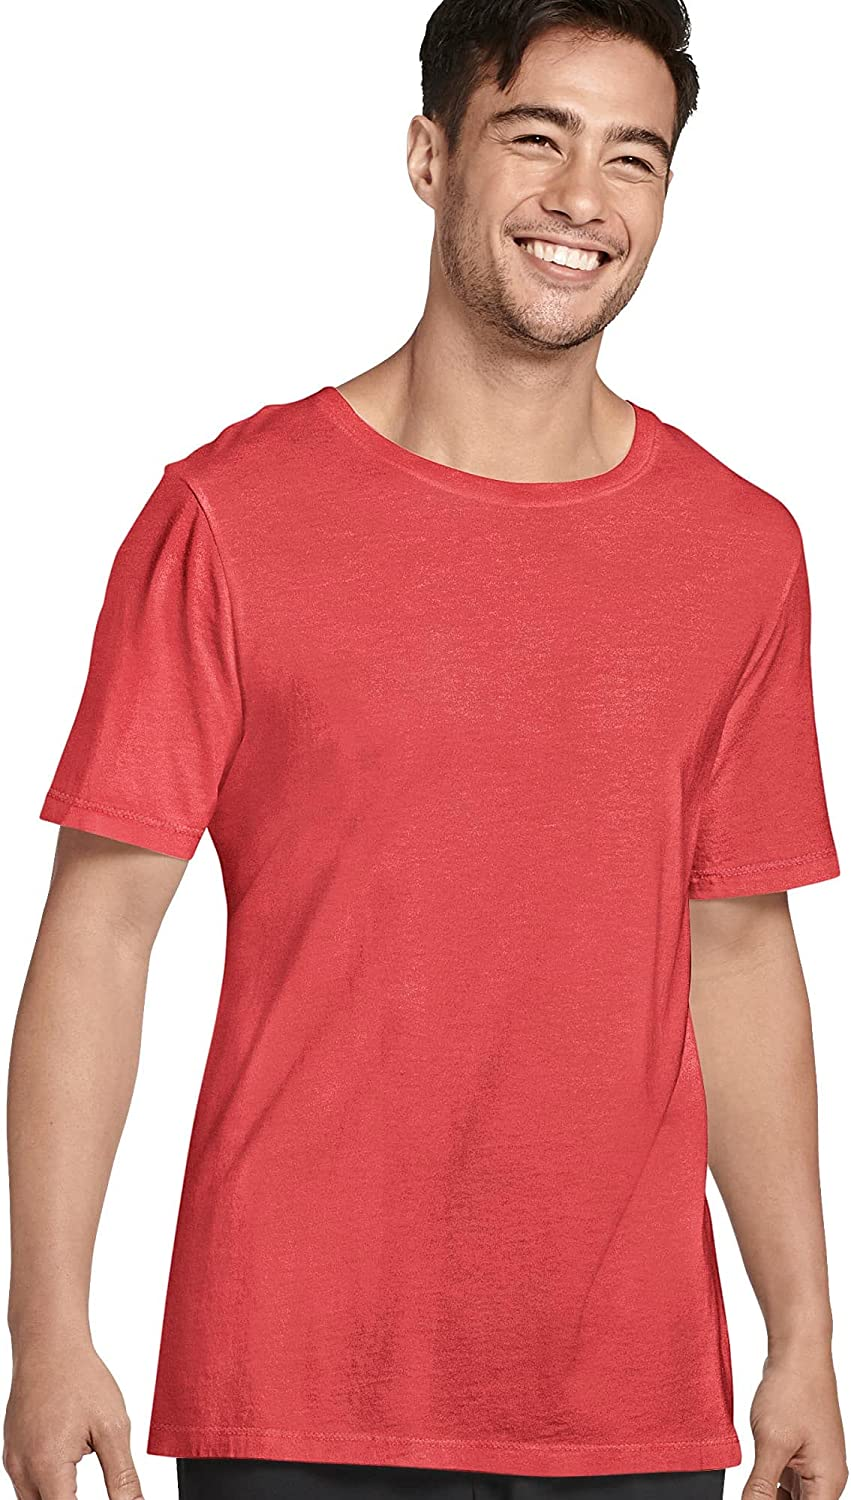 Jockey Men's T-Shirts Made in Max 54% OFF America Cotton Supima Limited time trial price T- Neck Crew